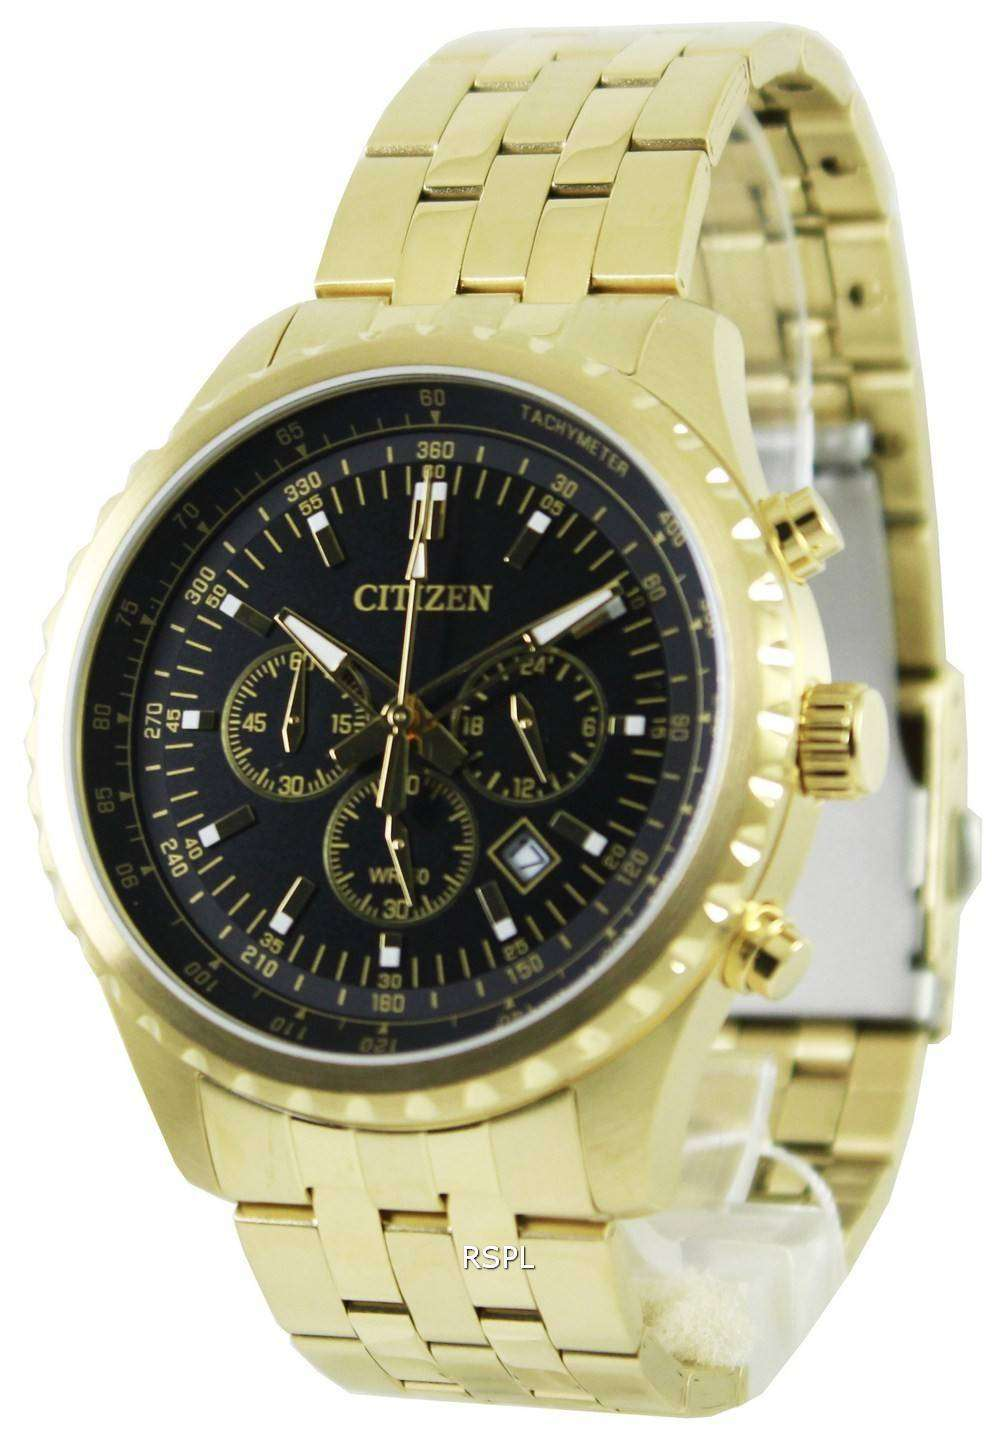 59e92158a Citizen Quartz Chronograph AN8062-51E Mens Watch - ZetaWatches